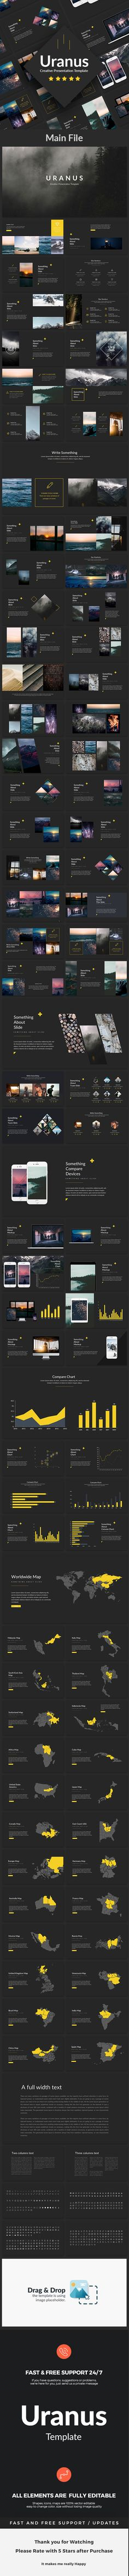 Uranus - Creative Powerpoint Template